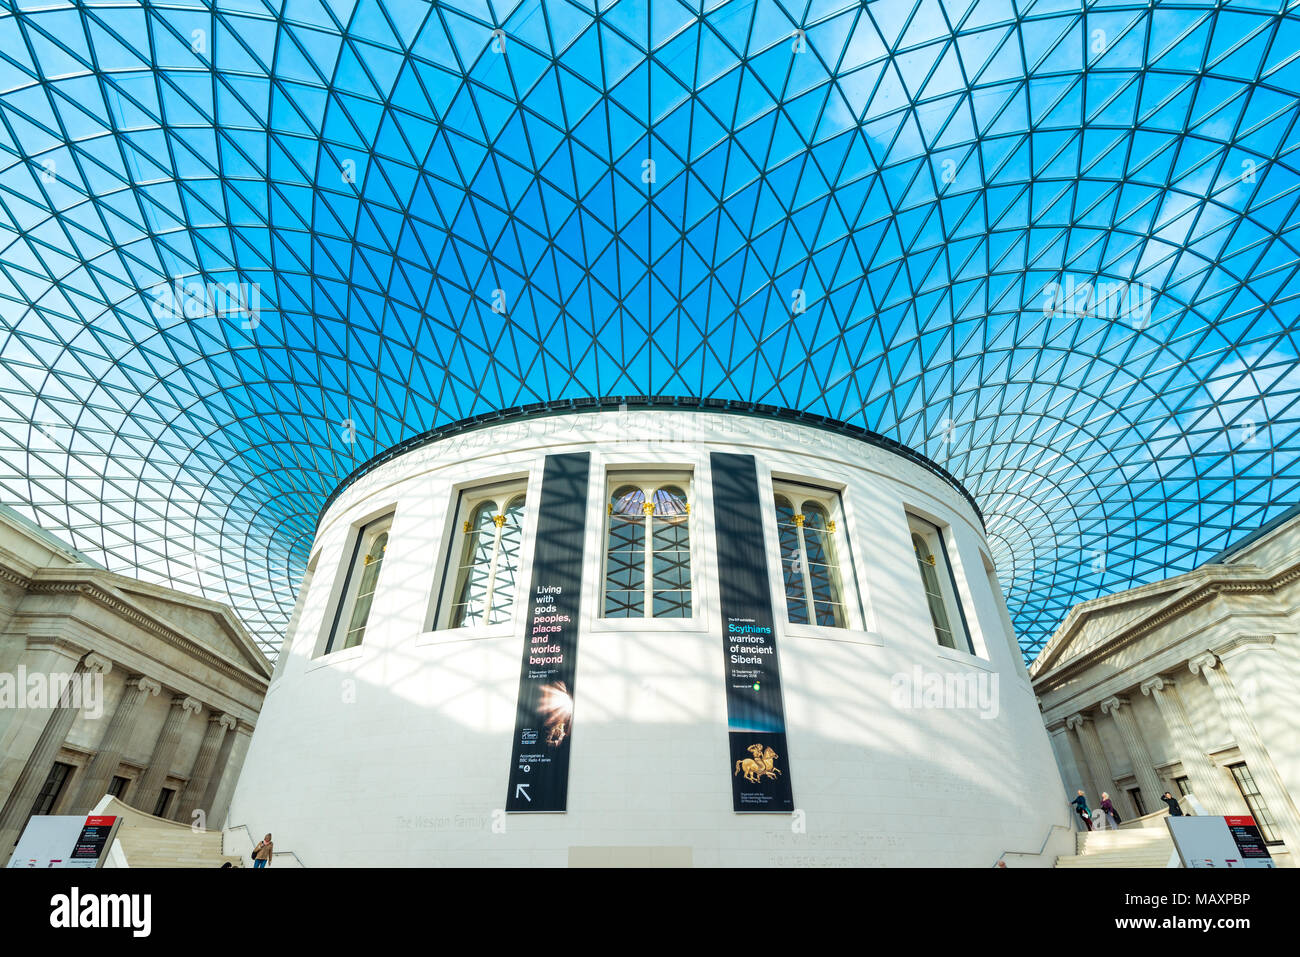 Den Great Court des British Museum, London, UK Stockbild